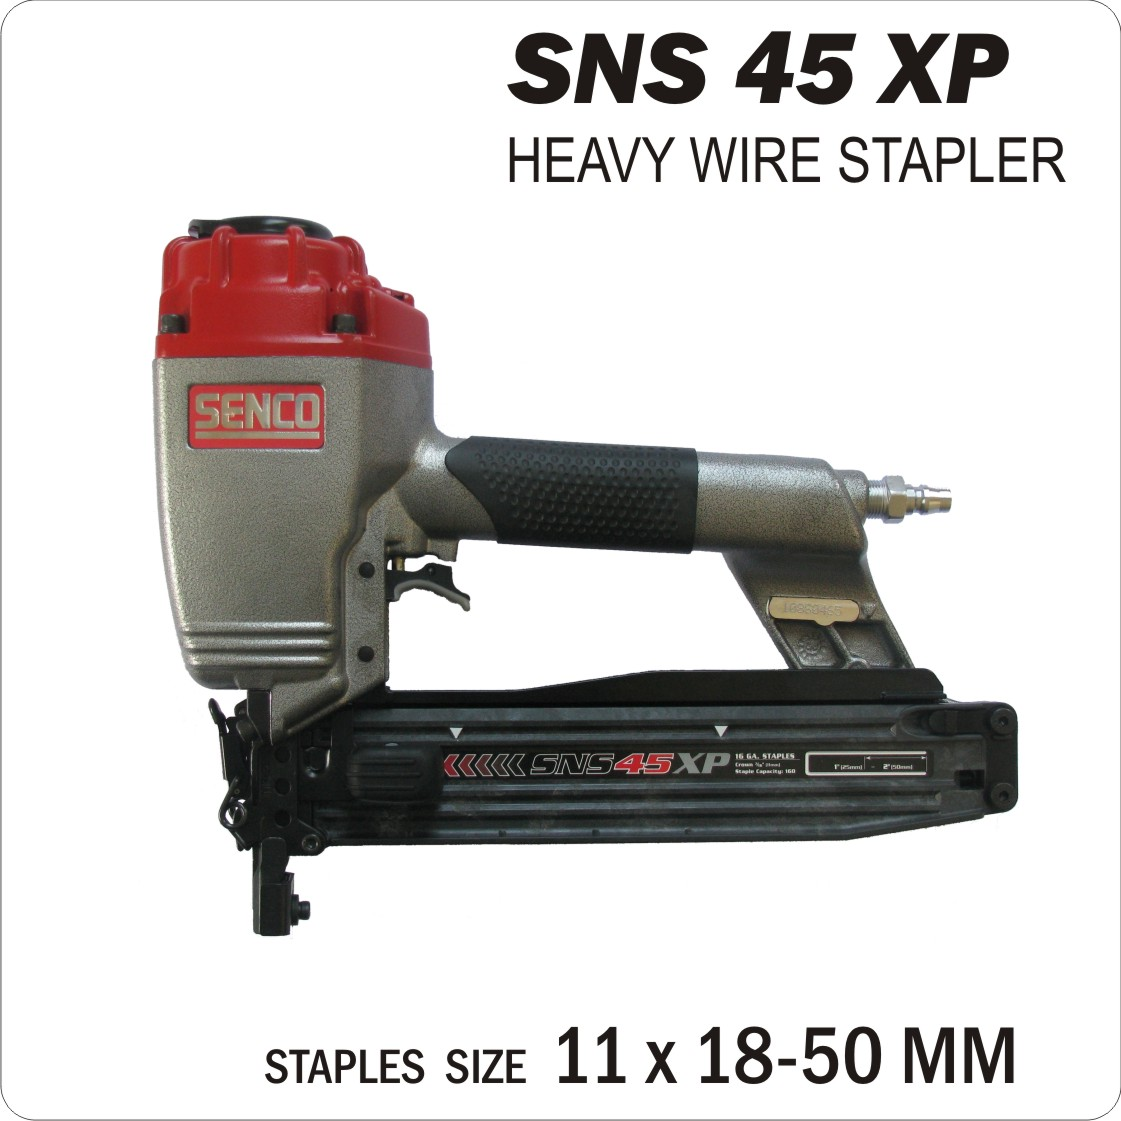 SENCO HEAVY WIRE STAPLER